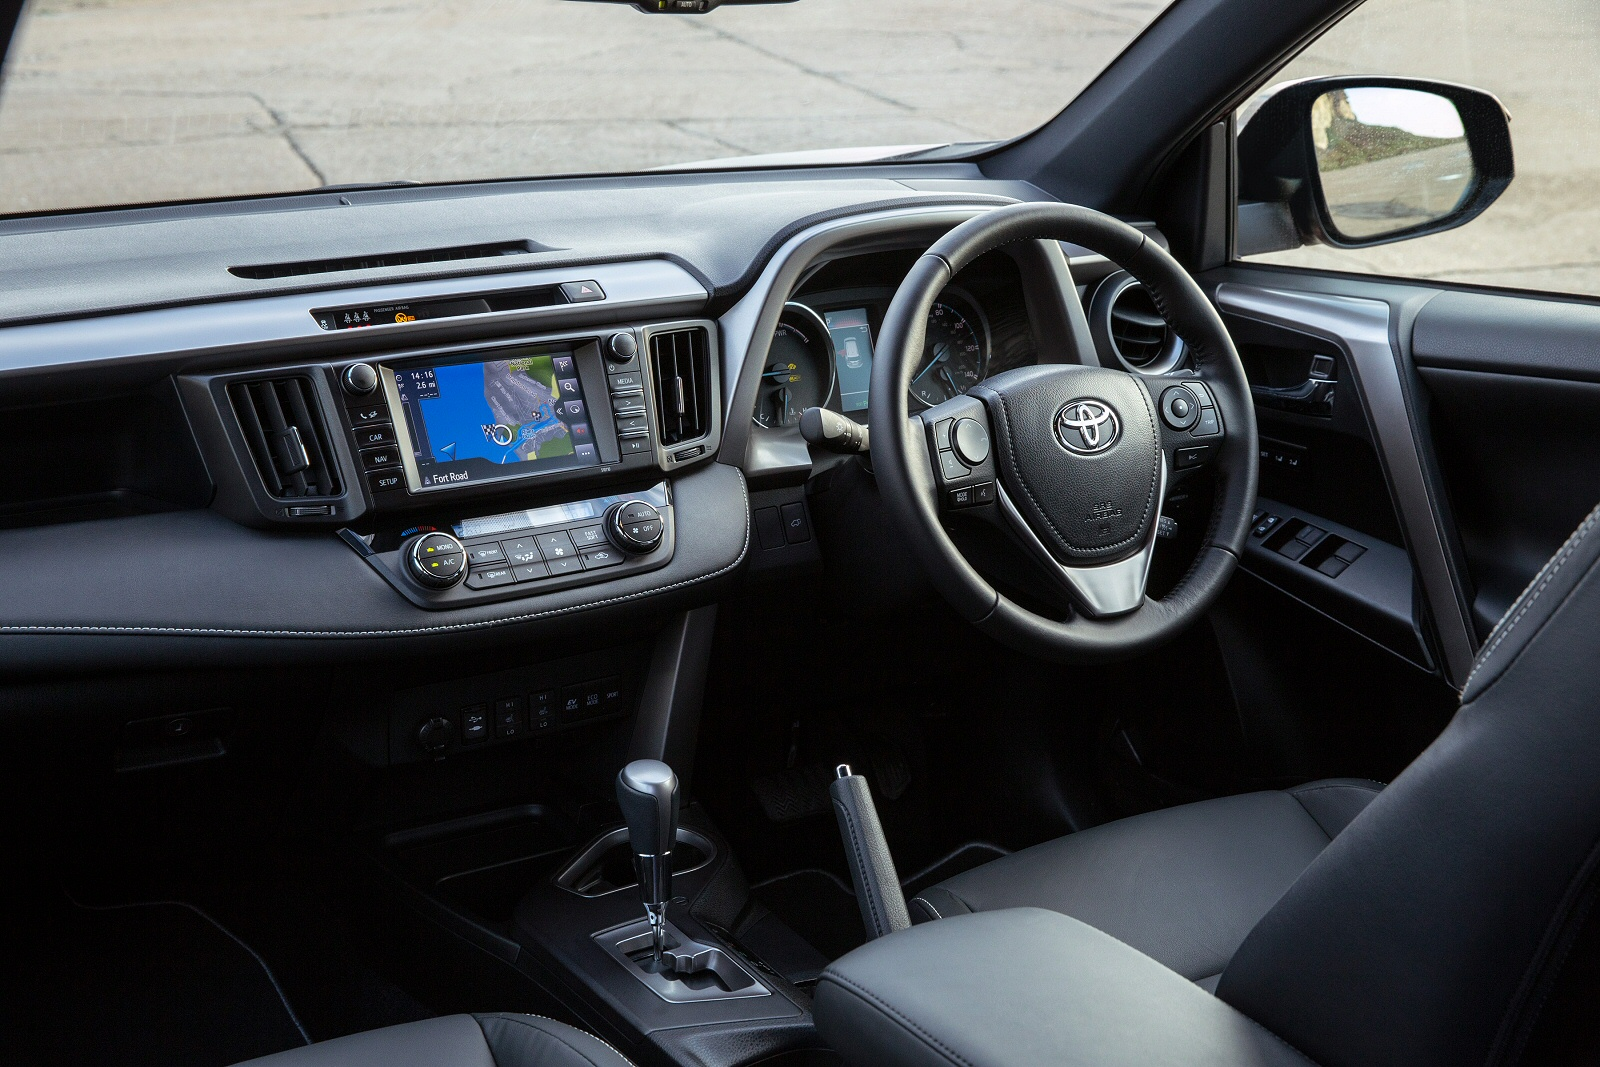 new toyota rav4 2 5 vvt i hybrid icon tech tss 5dr cvt 2wd hybrid estate for sale bristol street. Black Bedroom Furniture Sets. Home Design Ideas